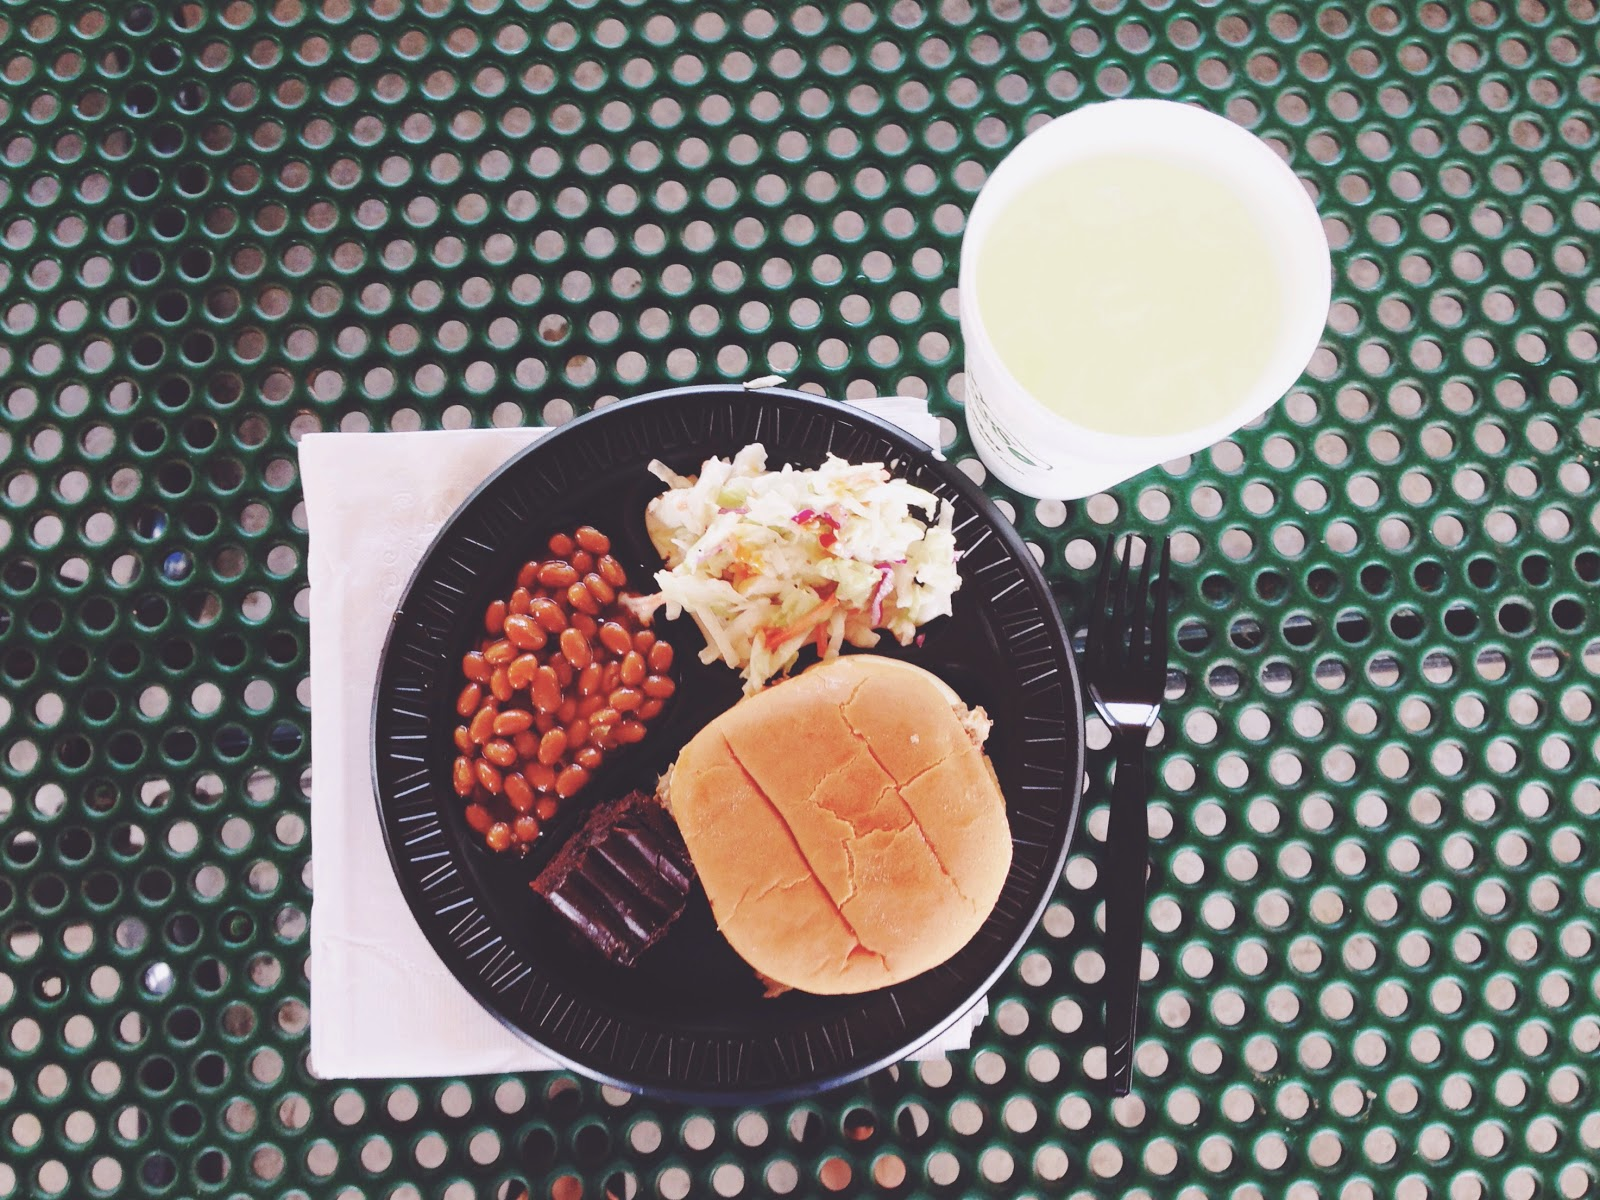 Sticky Fingers pulled pork sandwich, beans, cole slaw, and lemonade at Short Stay Moncks Corner